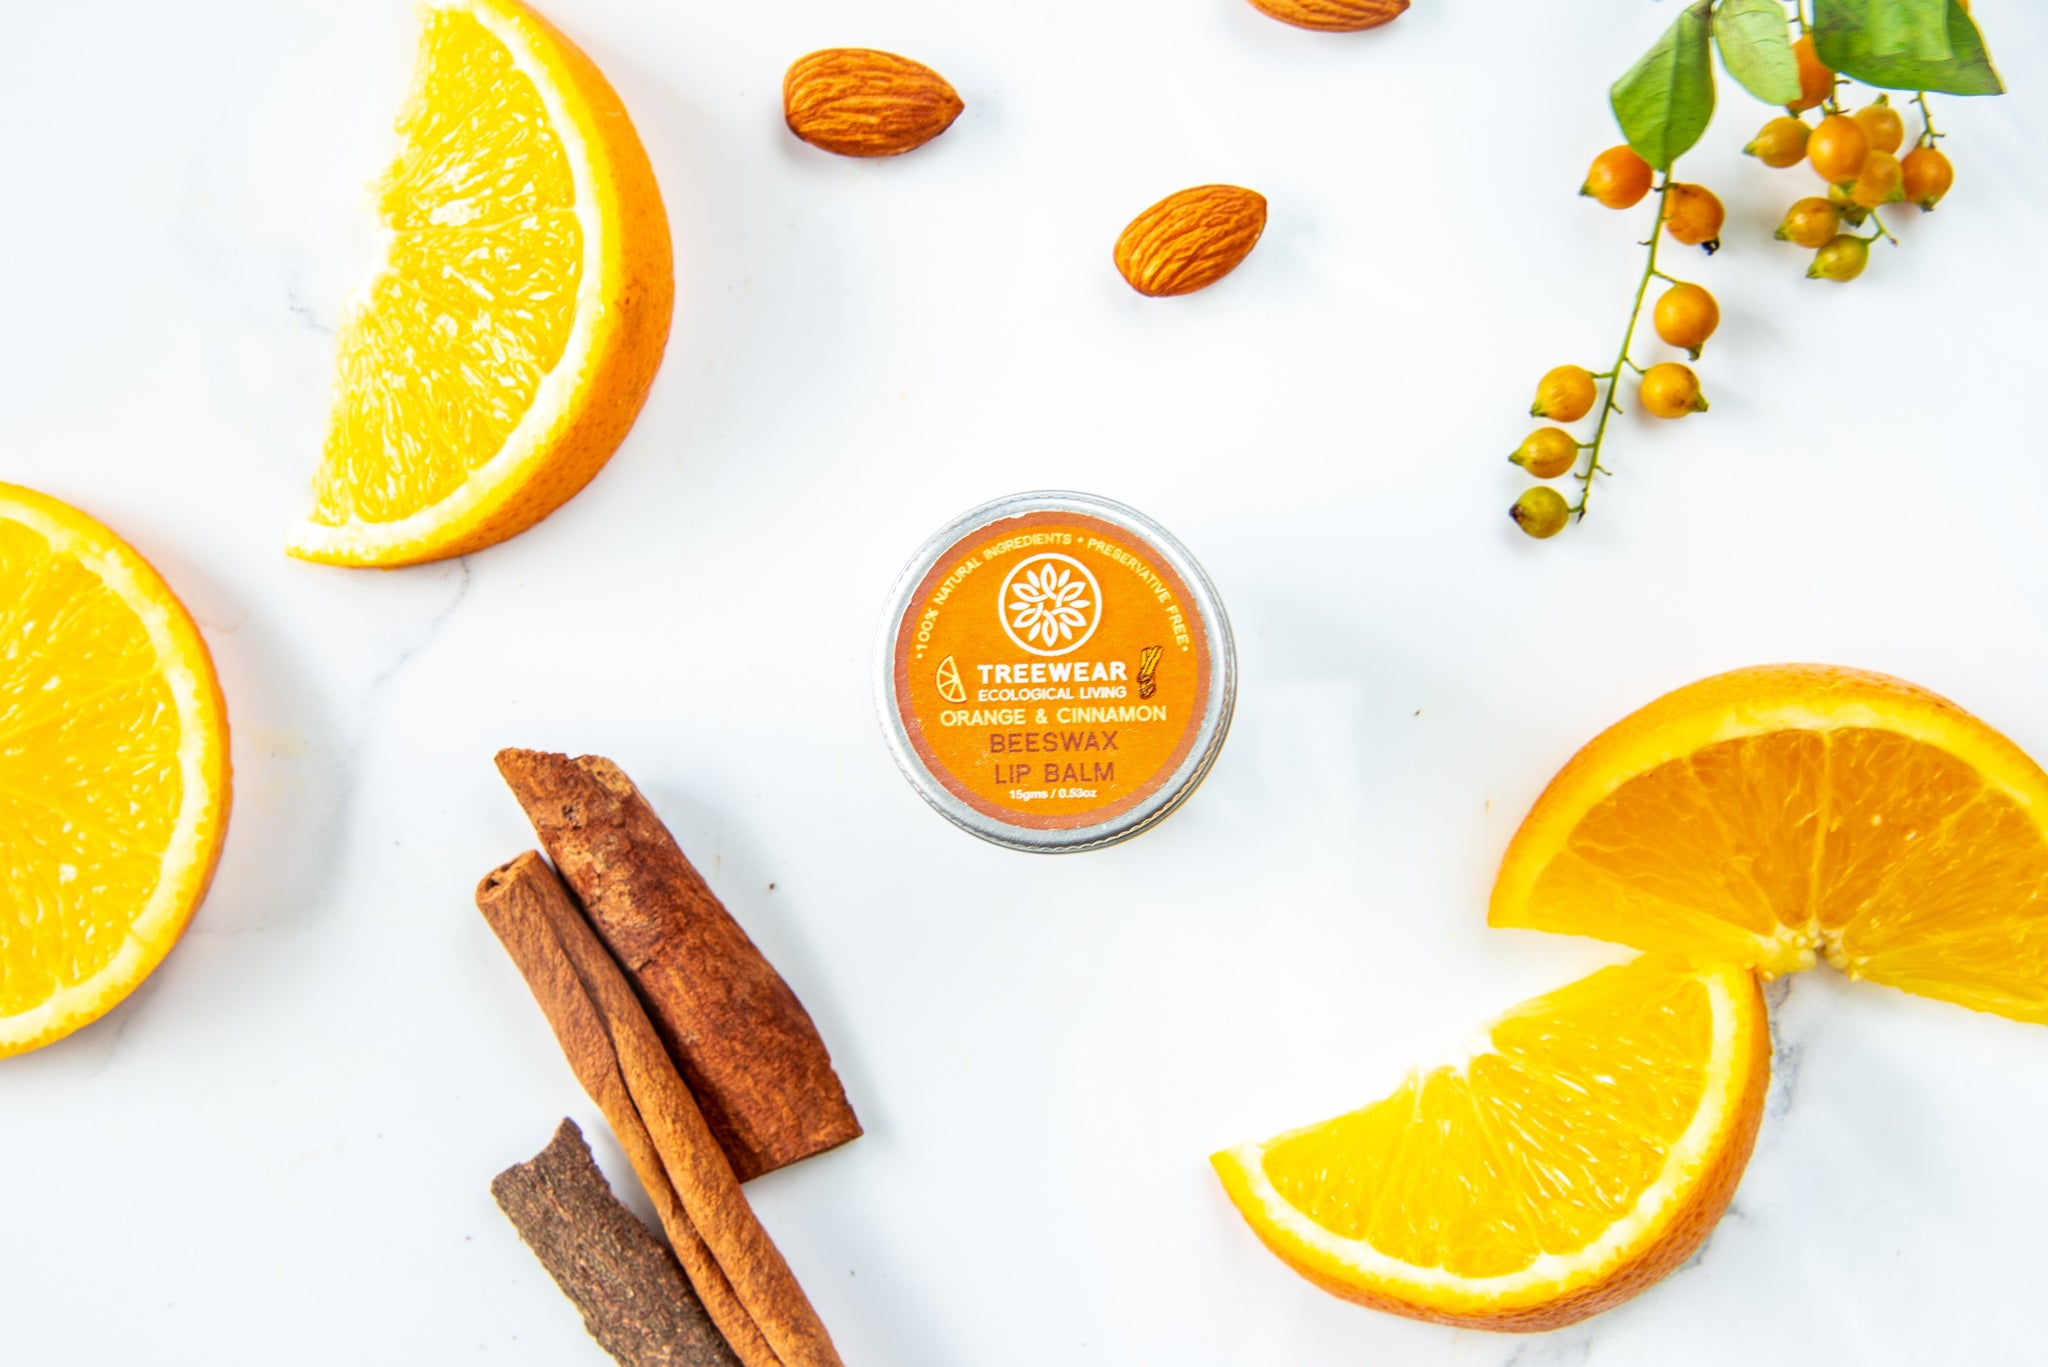 TREEWEAR Beeswax Lip Balm - Orange and Cinnamon